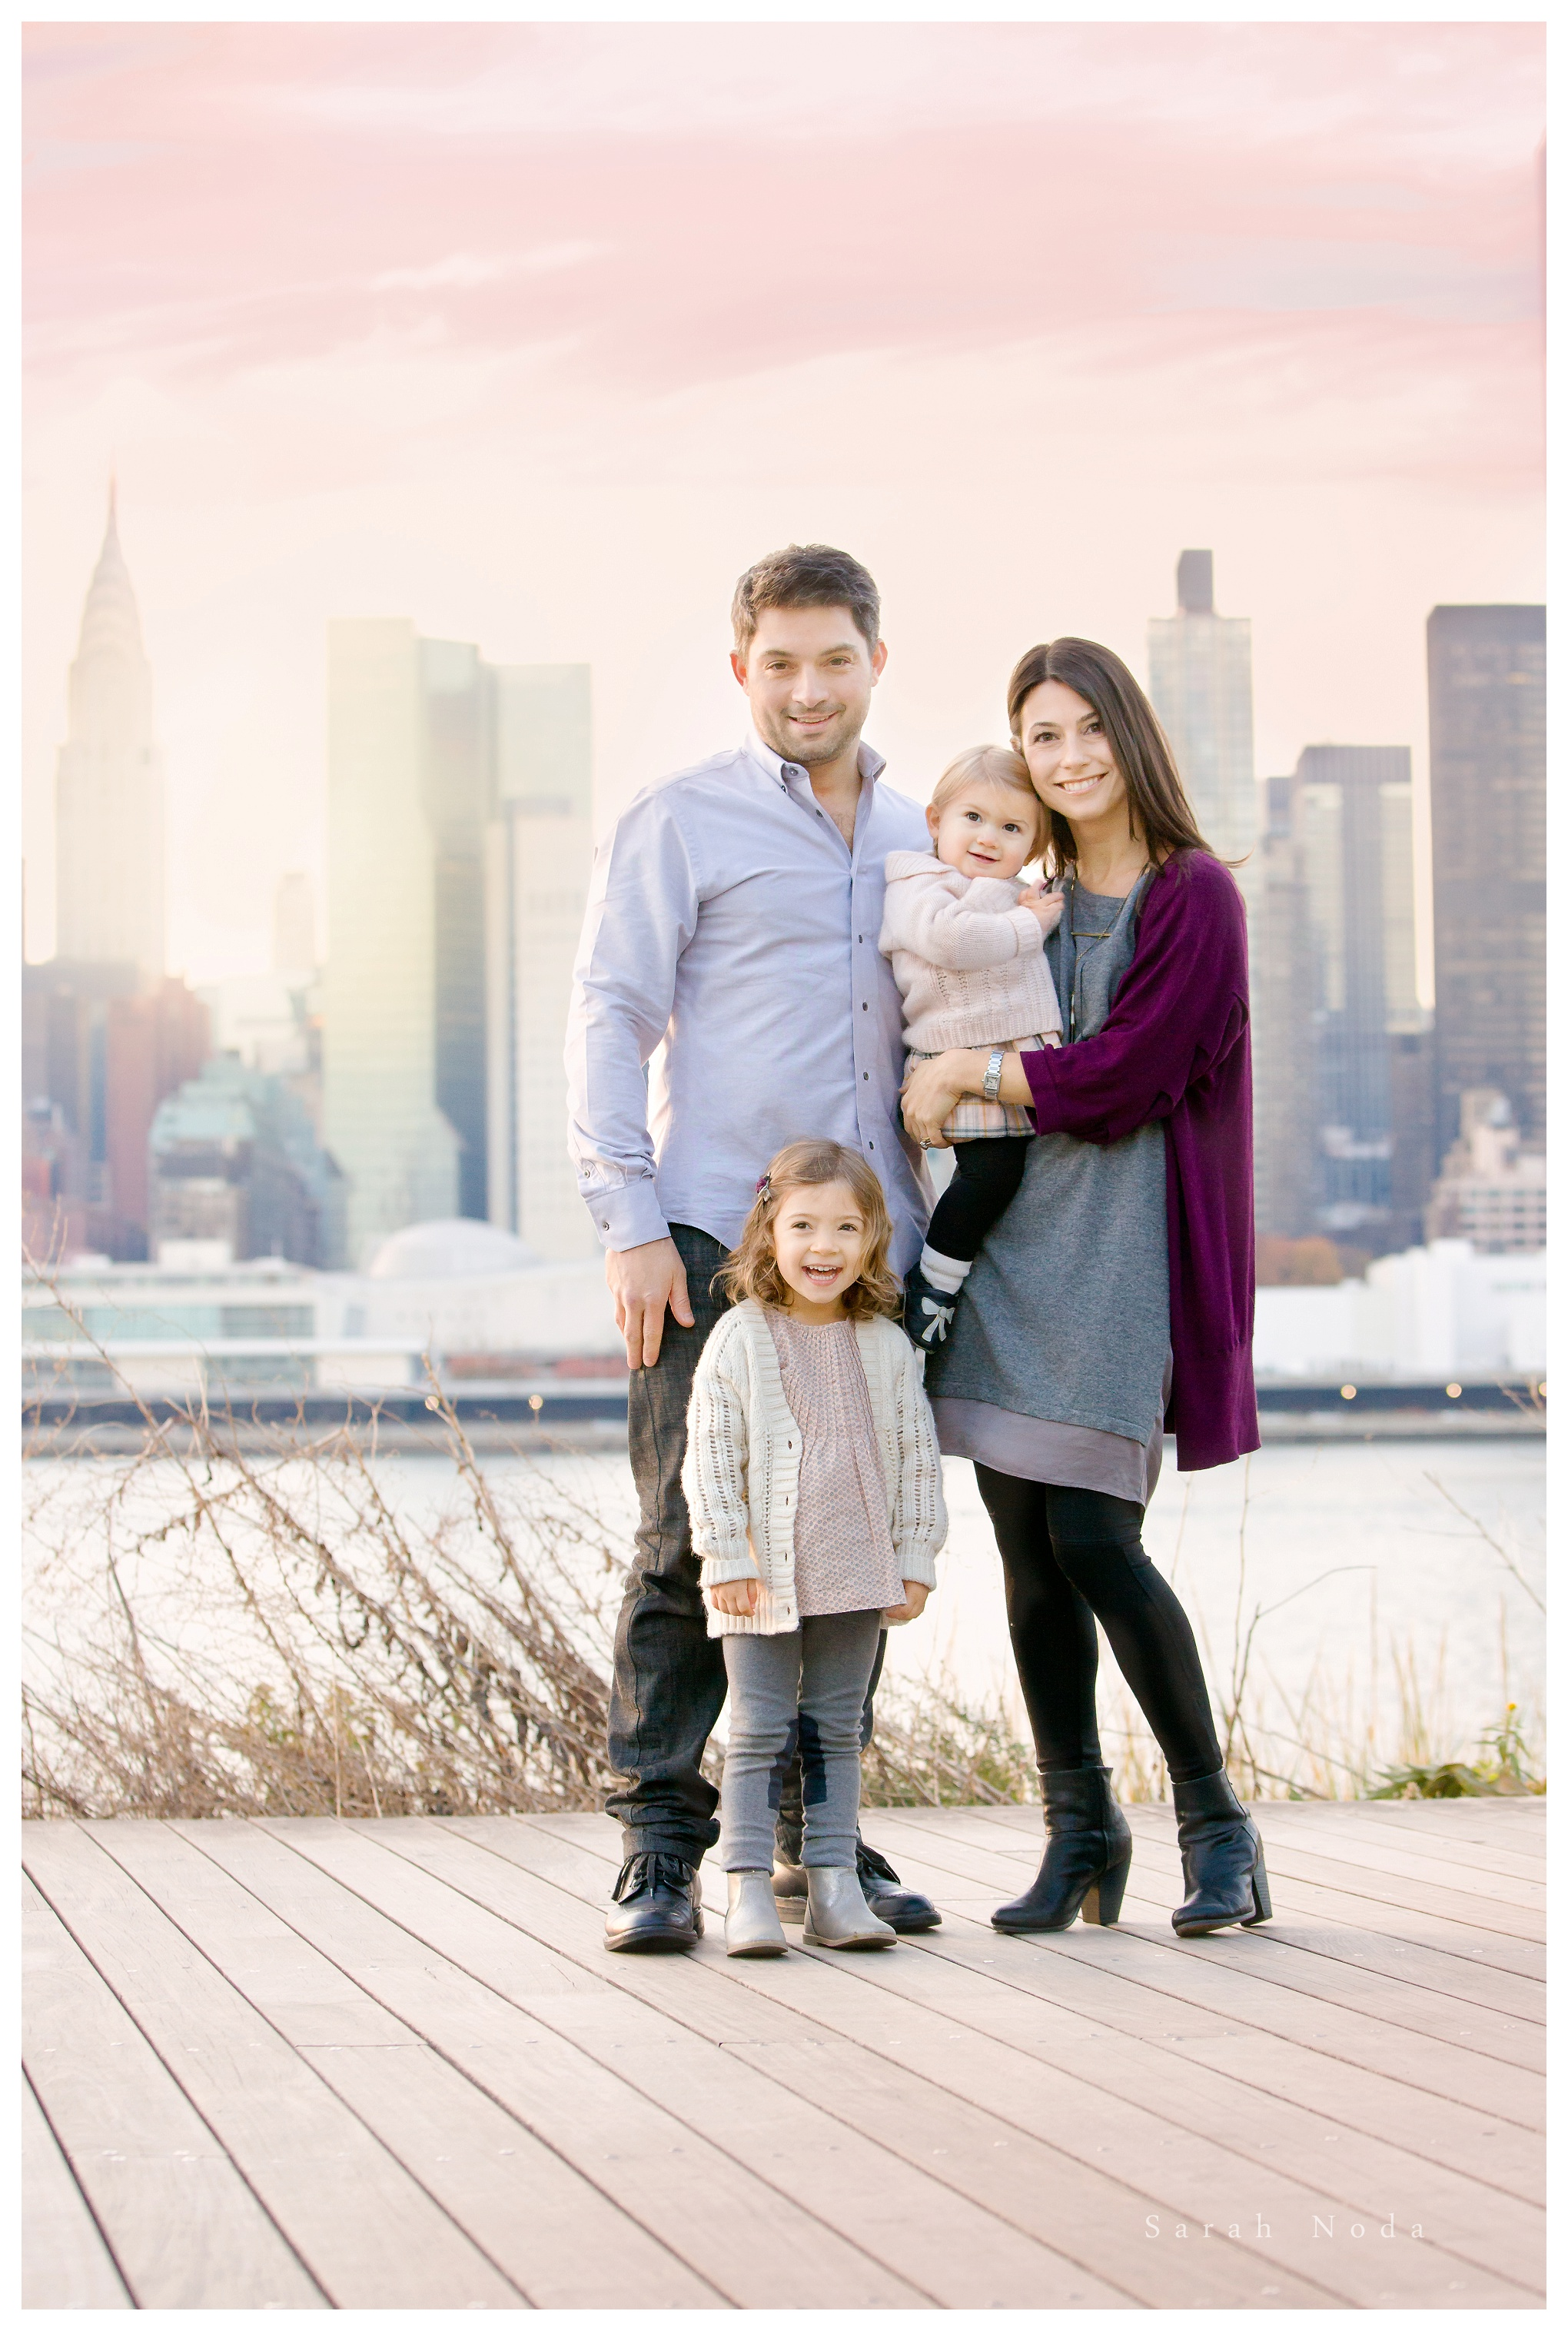 Pastel sunset over manhattan long island city family photographer